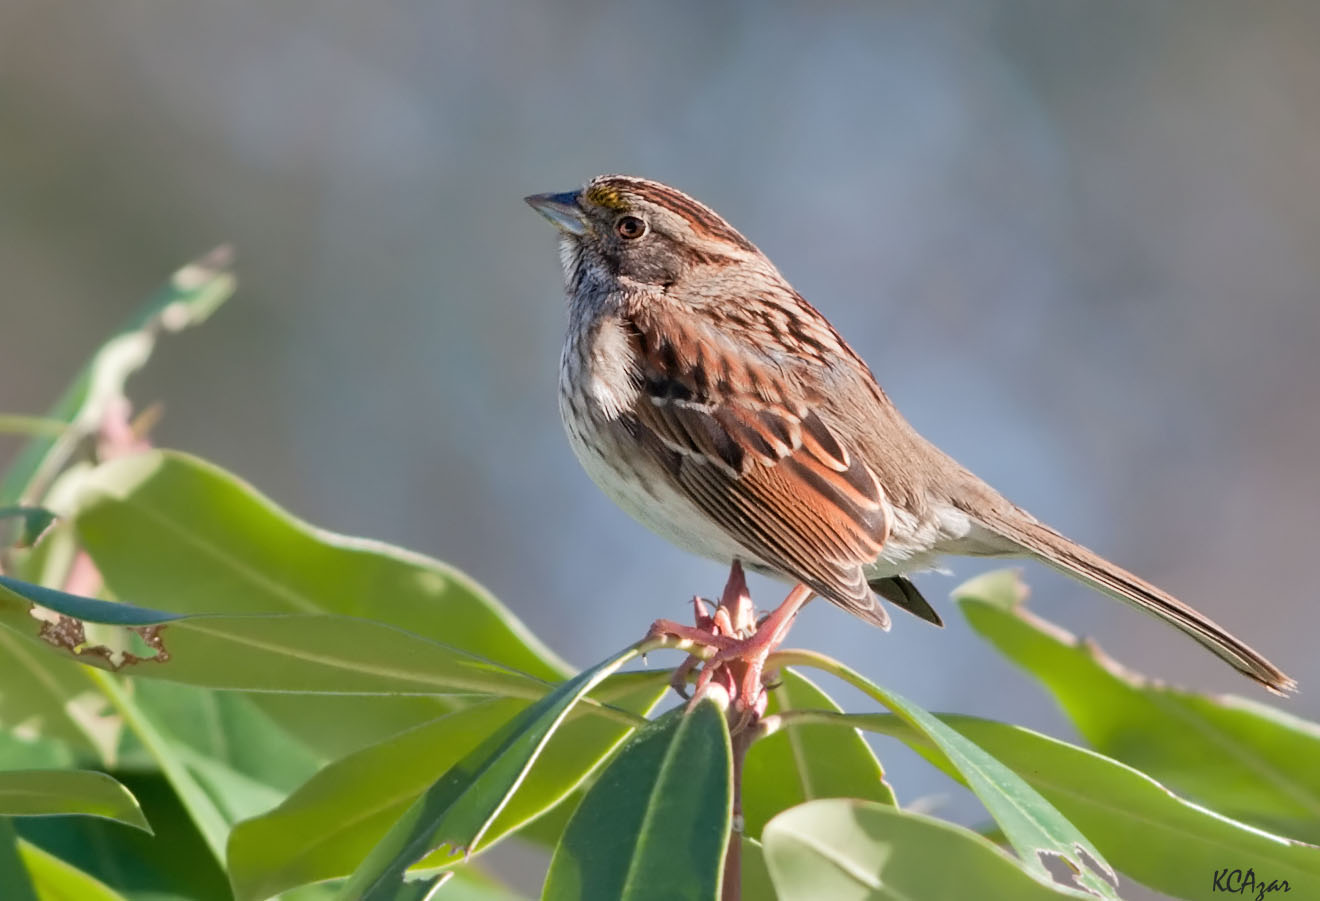 Tan-striped white-throated sparrow, photo by Kelly Colgan Azar